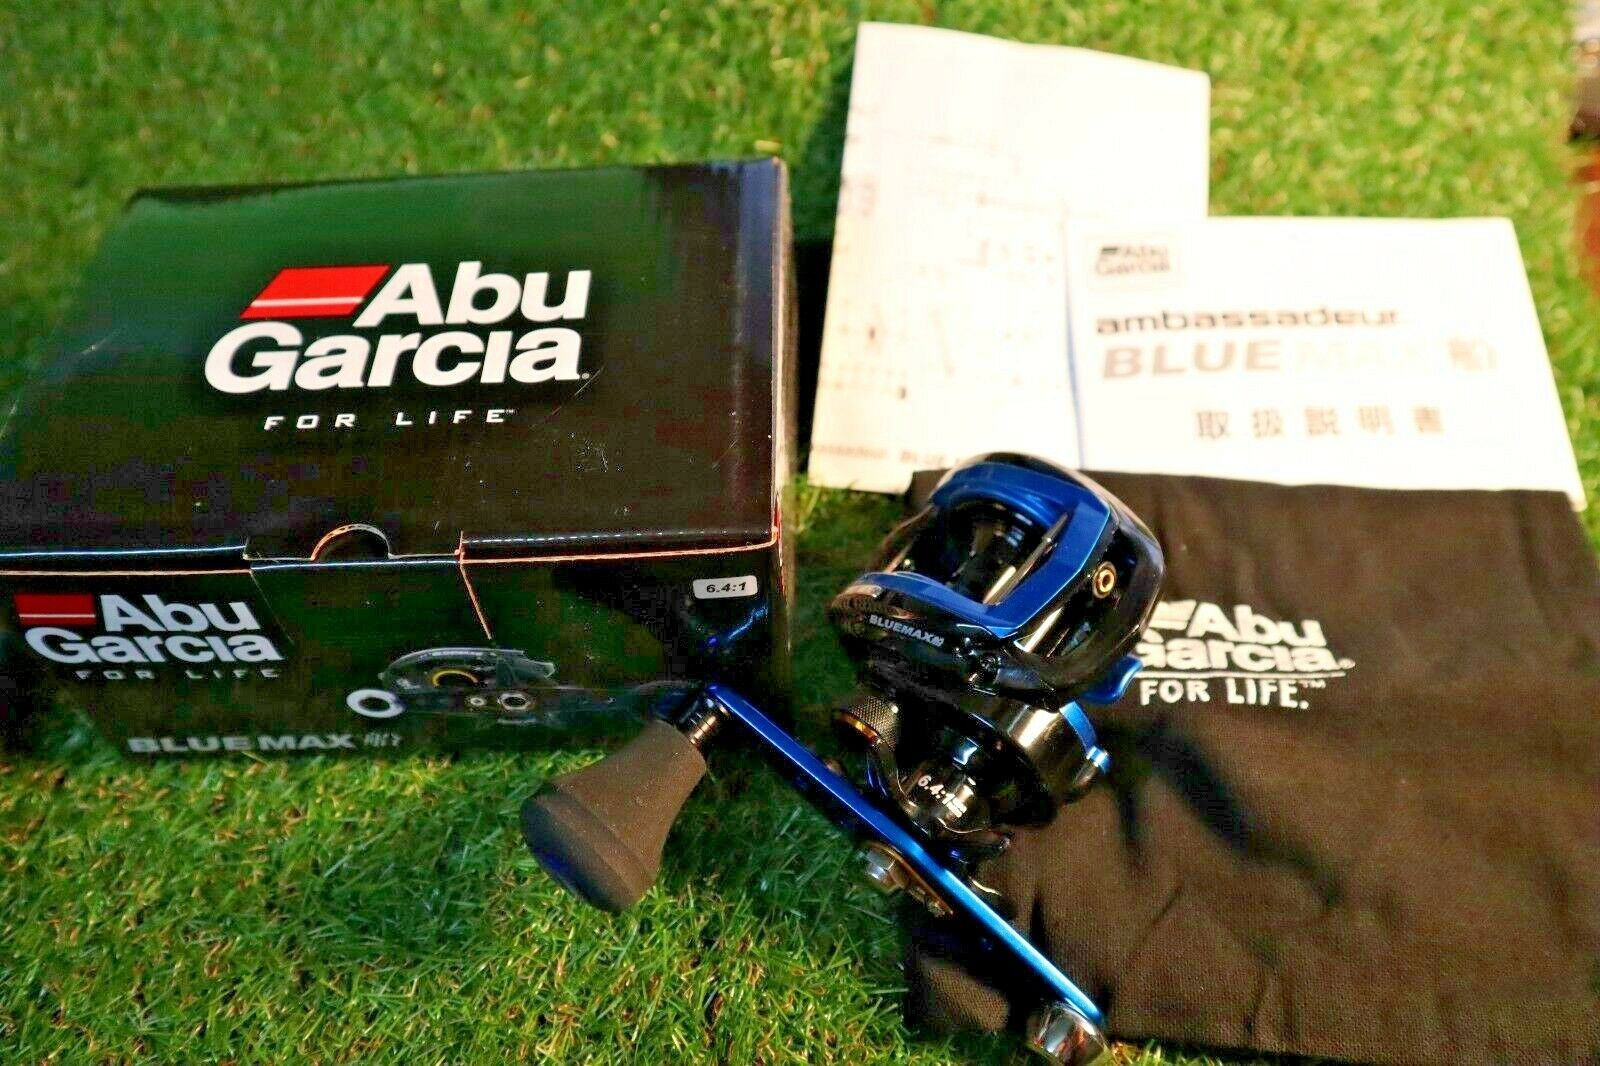 Abu Garcia Bait reel blueEMAX 3 for boat Hune Right From Stylish anglers japan